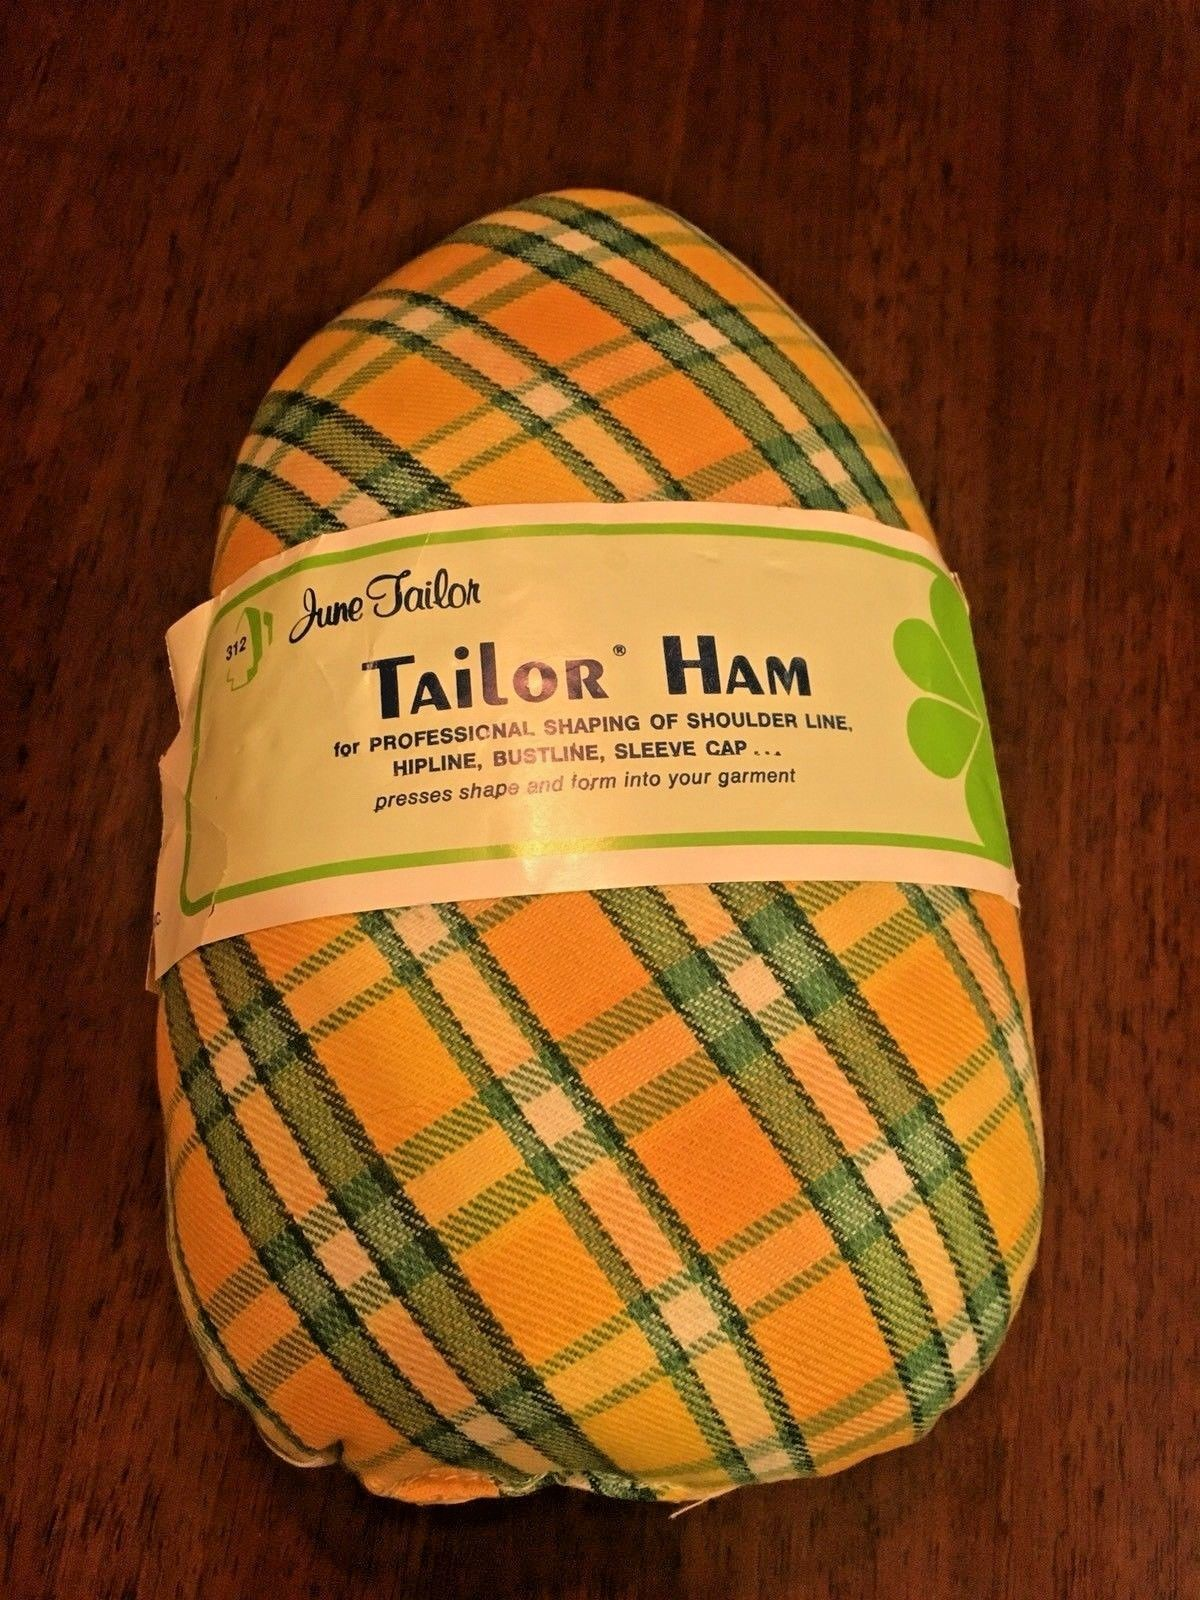 DRESSMAKER'S HAM June Tailor Pressing Sewing Tailor Yellow Green Plaid NEW